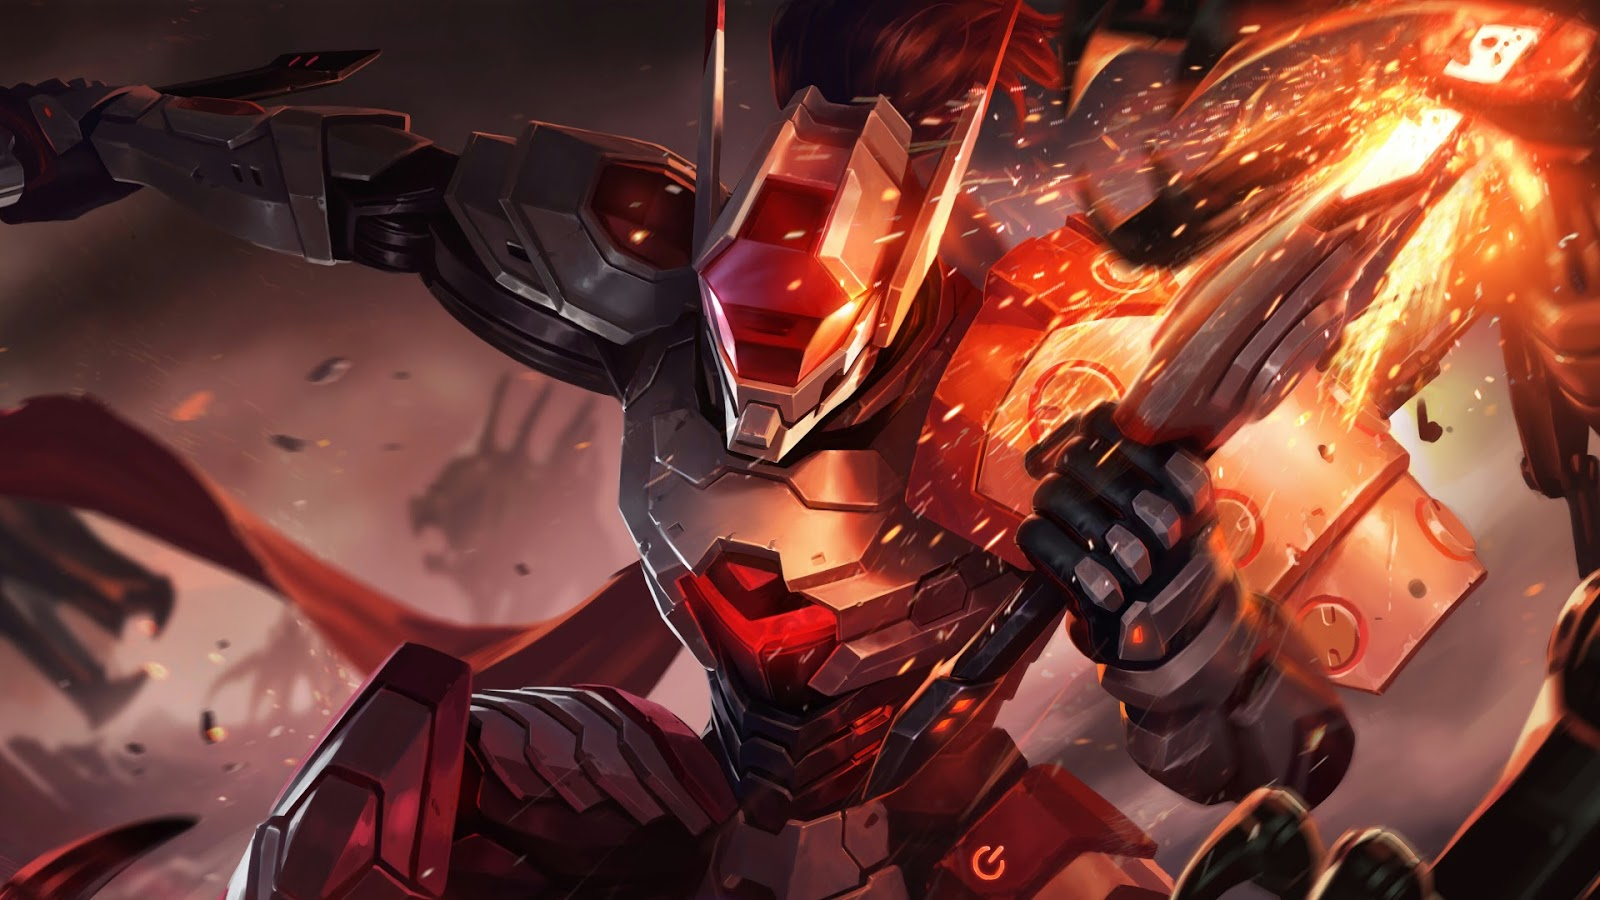 Wallpaper Saber Fullmetal Ronin Skin Mobile Legends HD for PC